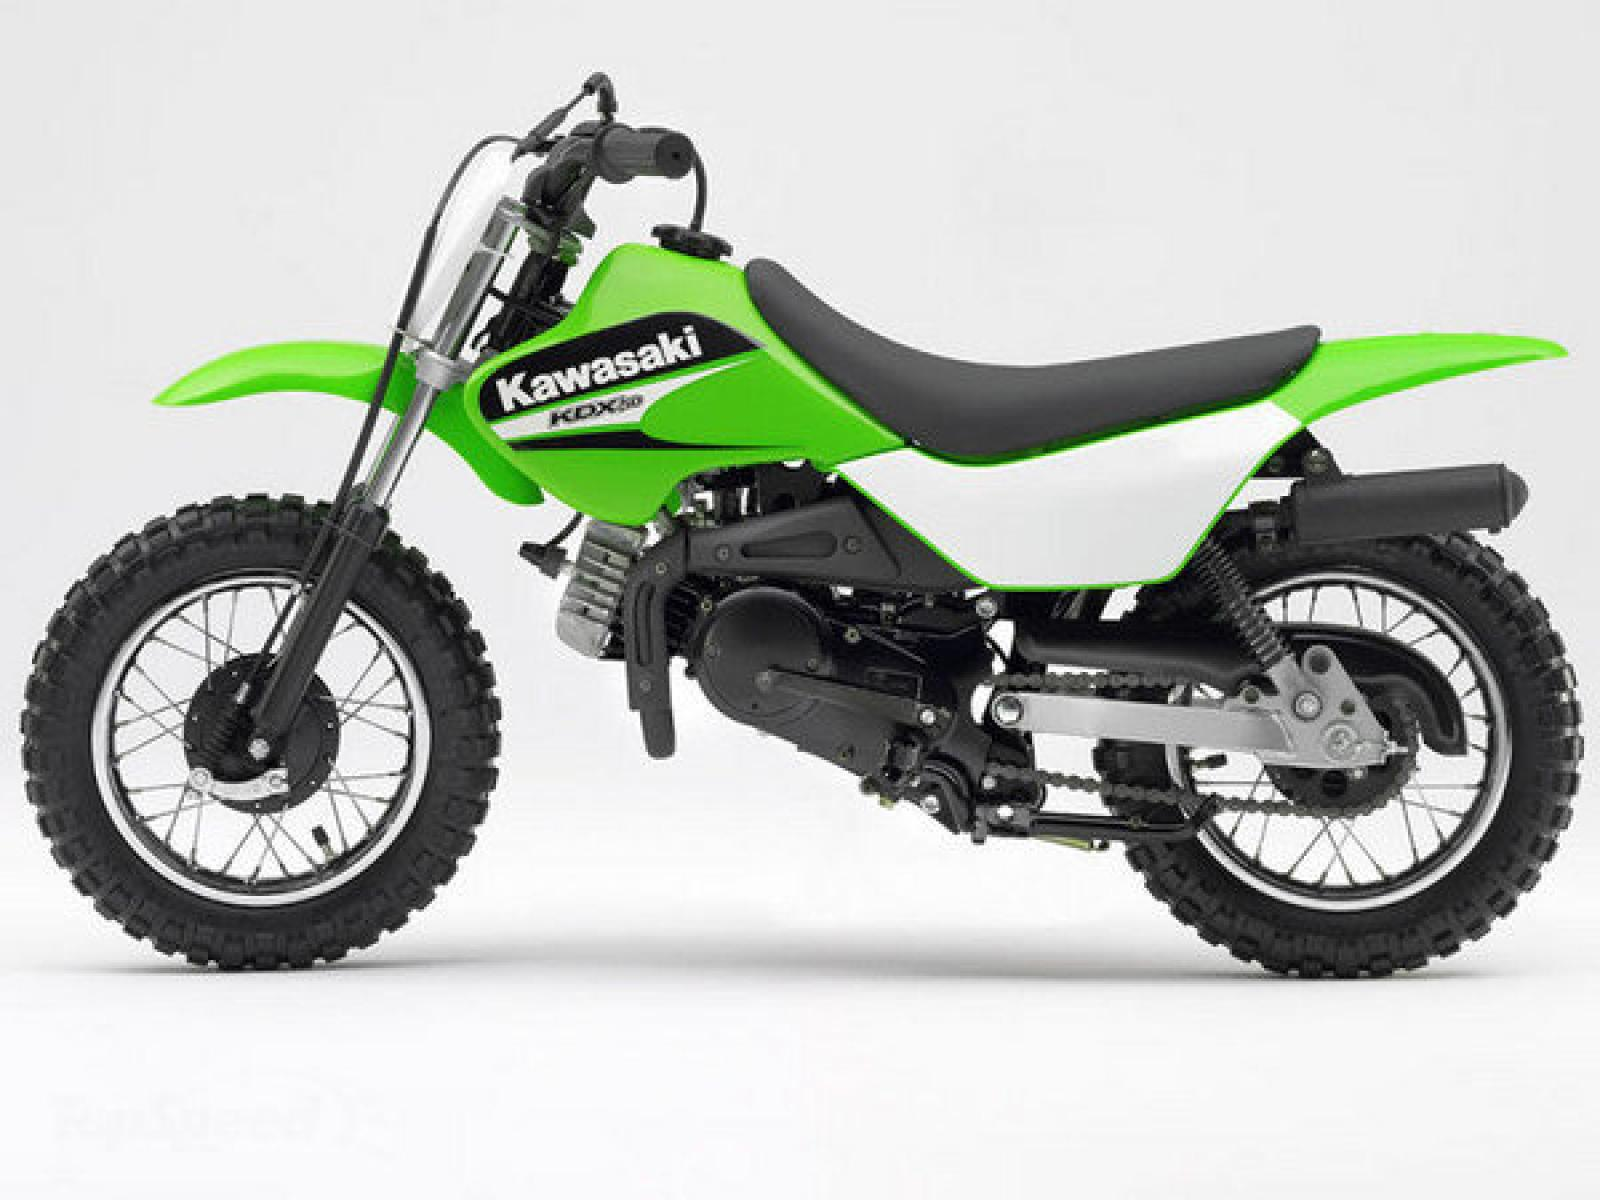 Kawasaki Cc Dirt Bike For Sale